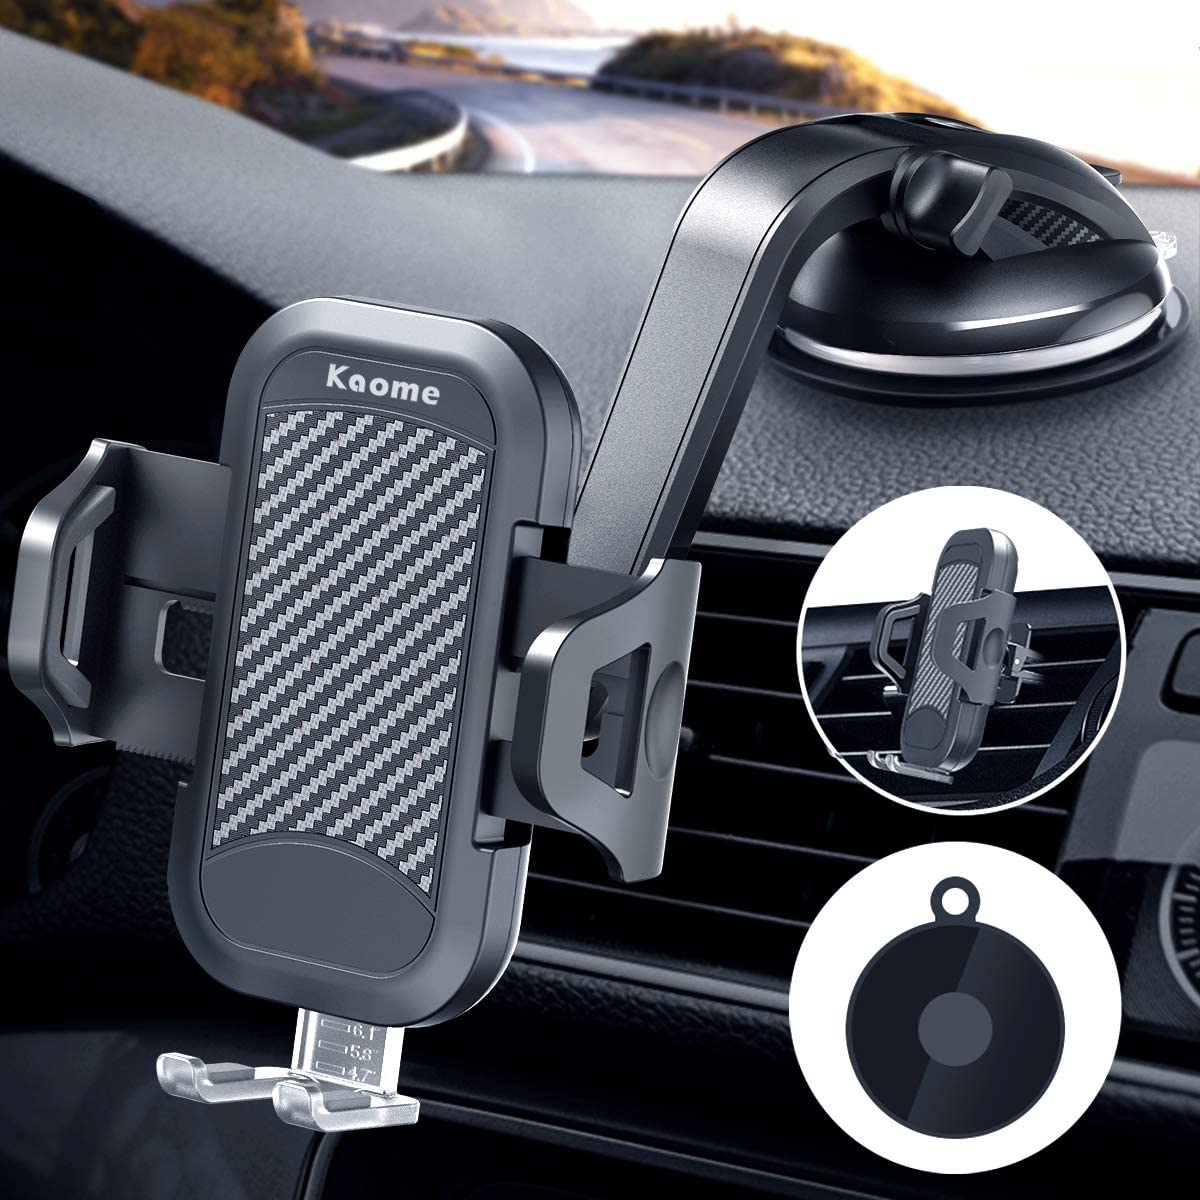 Kaome 3 in 1 Phone Holder for Car Upgraded Strong Suction Car Phone Mount for Dashboard Air Vent Windshield Universal for iPhone 11/11Pro Max/XR/X/SE/8 Plus,Samsung Galaxy S20 Ultra Note 10 Plus/10 9